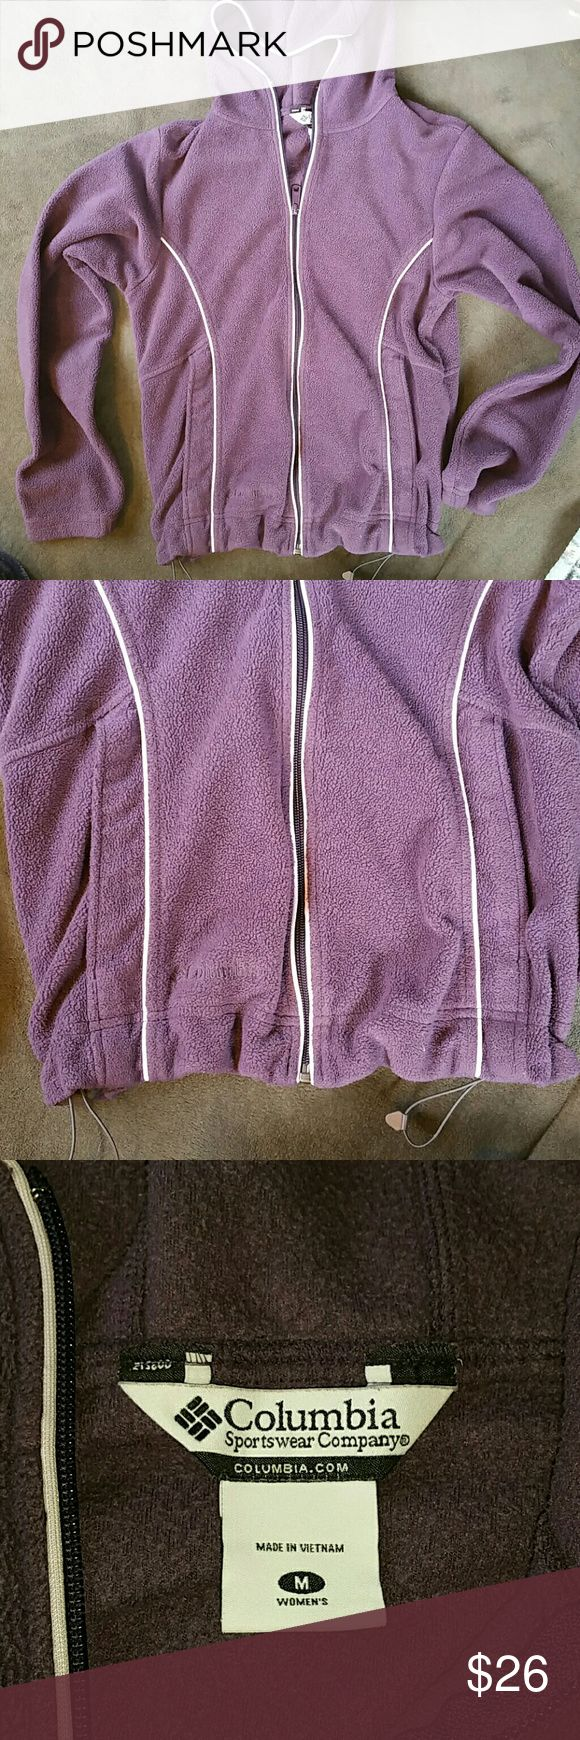 Columbia women's size M purple hooded jacket Columbia women's size Medium purple hooded jacket. Full zip up and cinched waist. Columbia Jackets & Coats